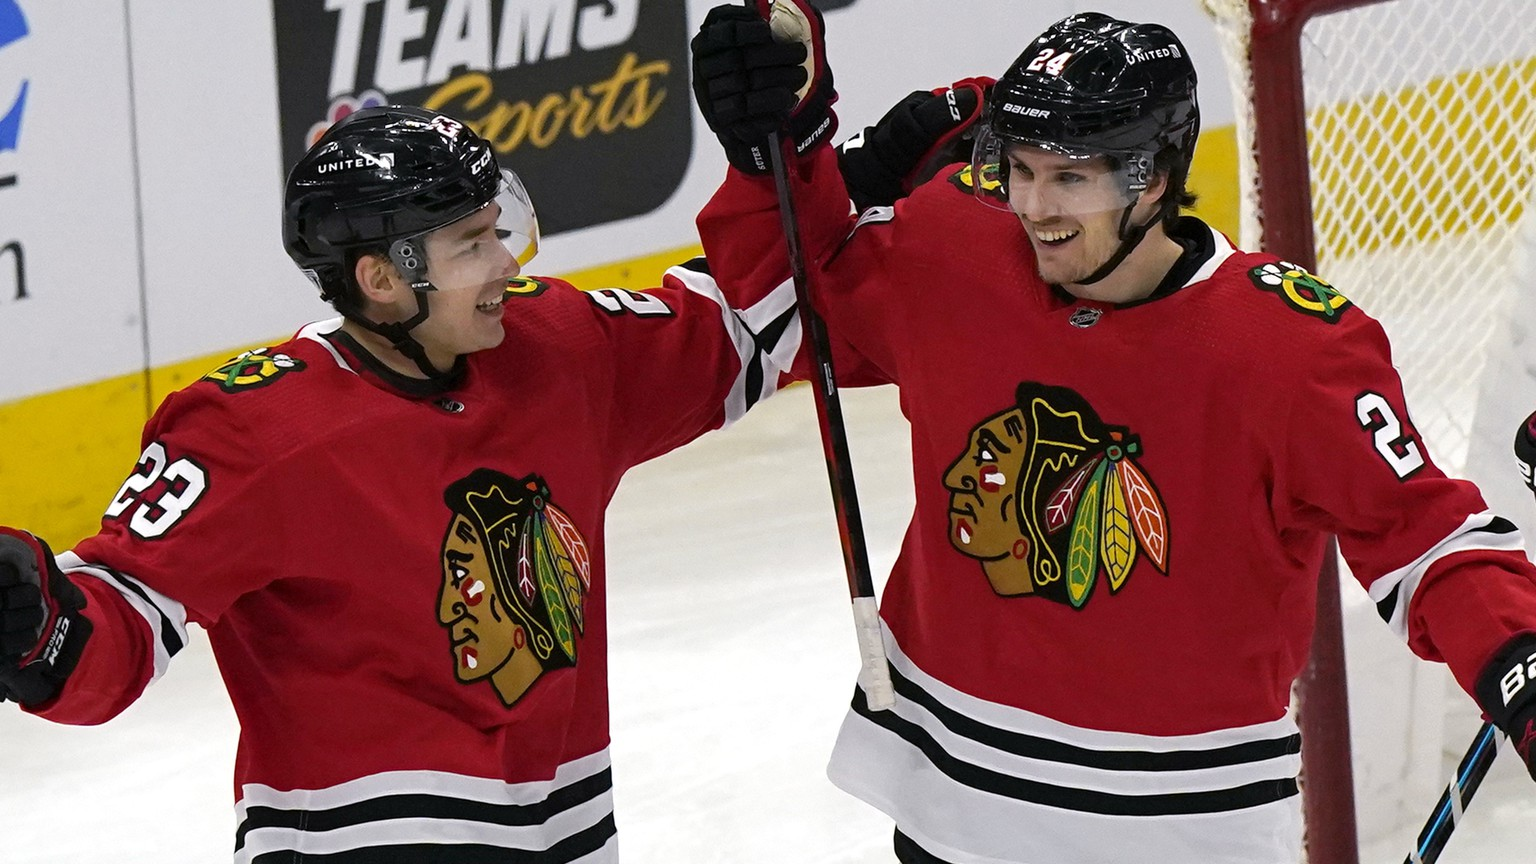 Chicago Blackhawks center Pius Suter, right, celebrates with left-wing Philipp Kurashev after scoring his second goal against the Detroit Red Wings during the first period of an NHL hockey game in Chicago, Sunday, Jan. 24, 2021.  (AP Photo/Nam Y. Huh) Pius Suter,Philipp Kurashev